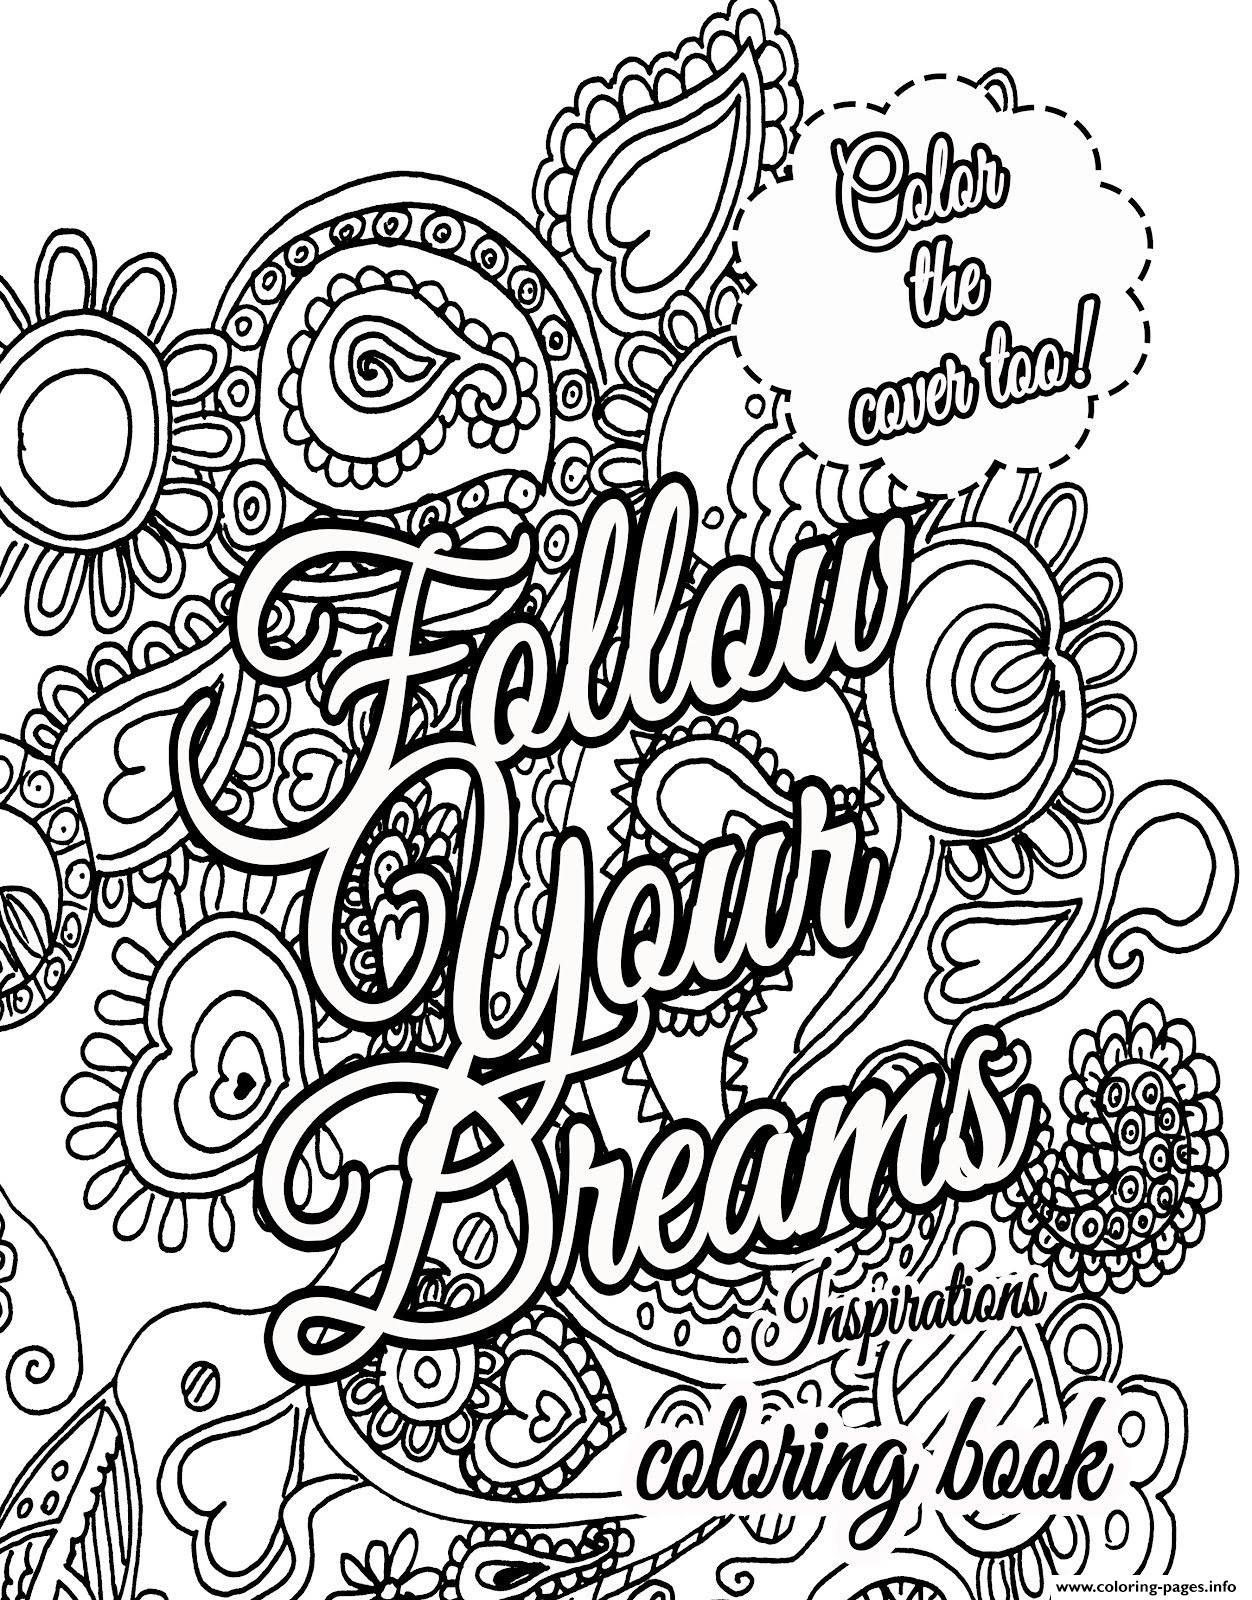 Coloring Book World ~ Free Positive Inspirational Quotes On Winter - Free Printable Quote Coloring Pages For Adults